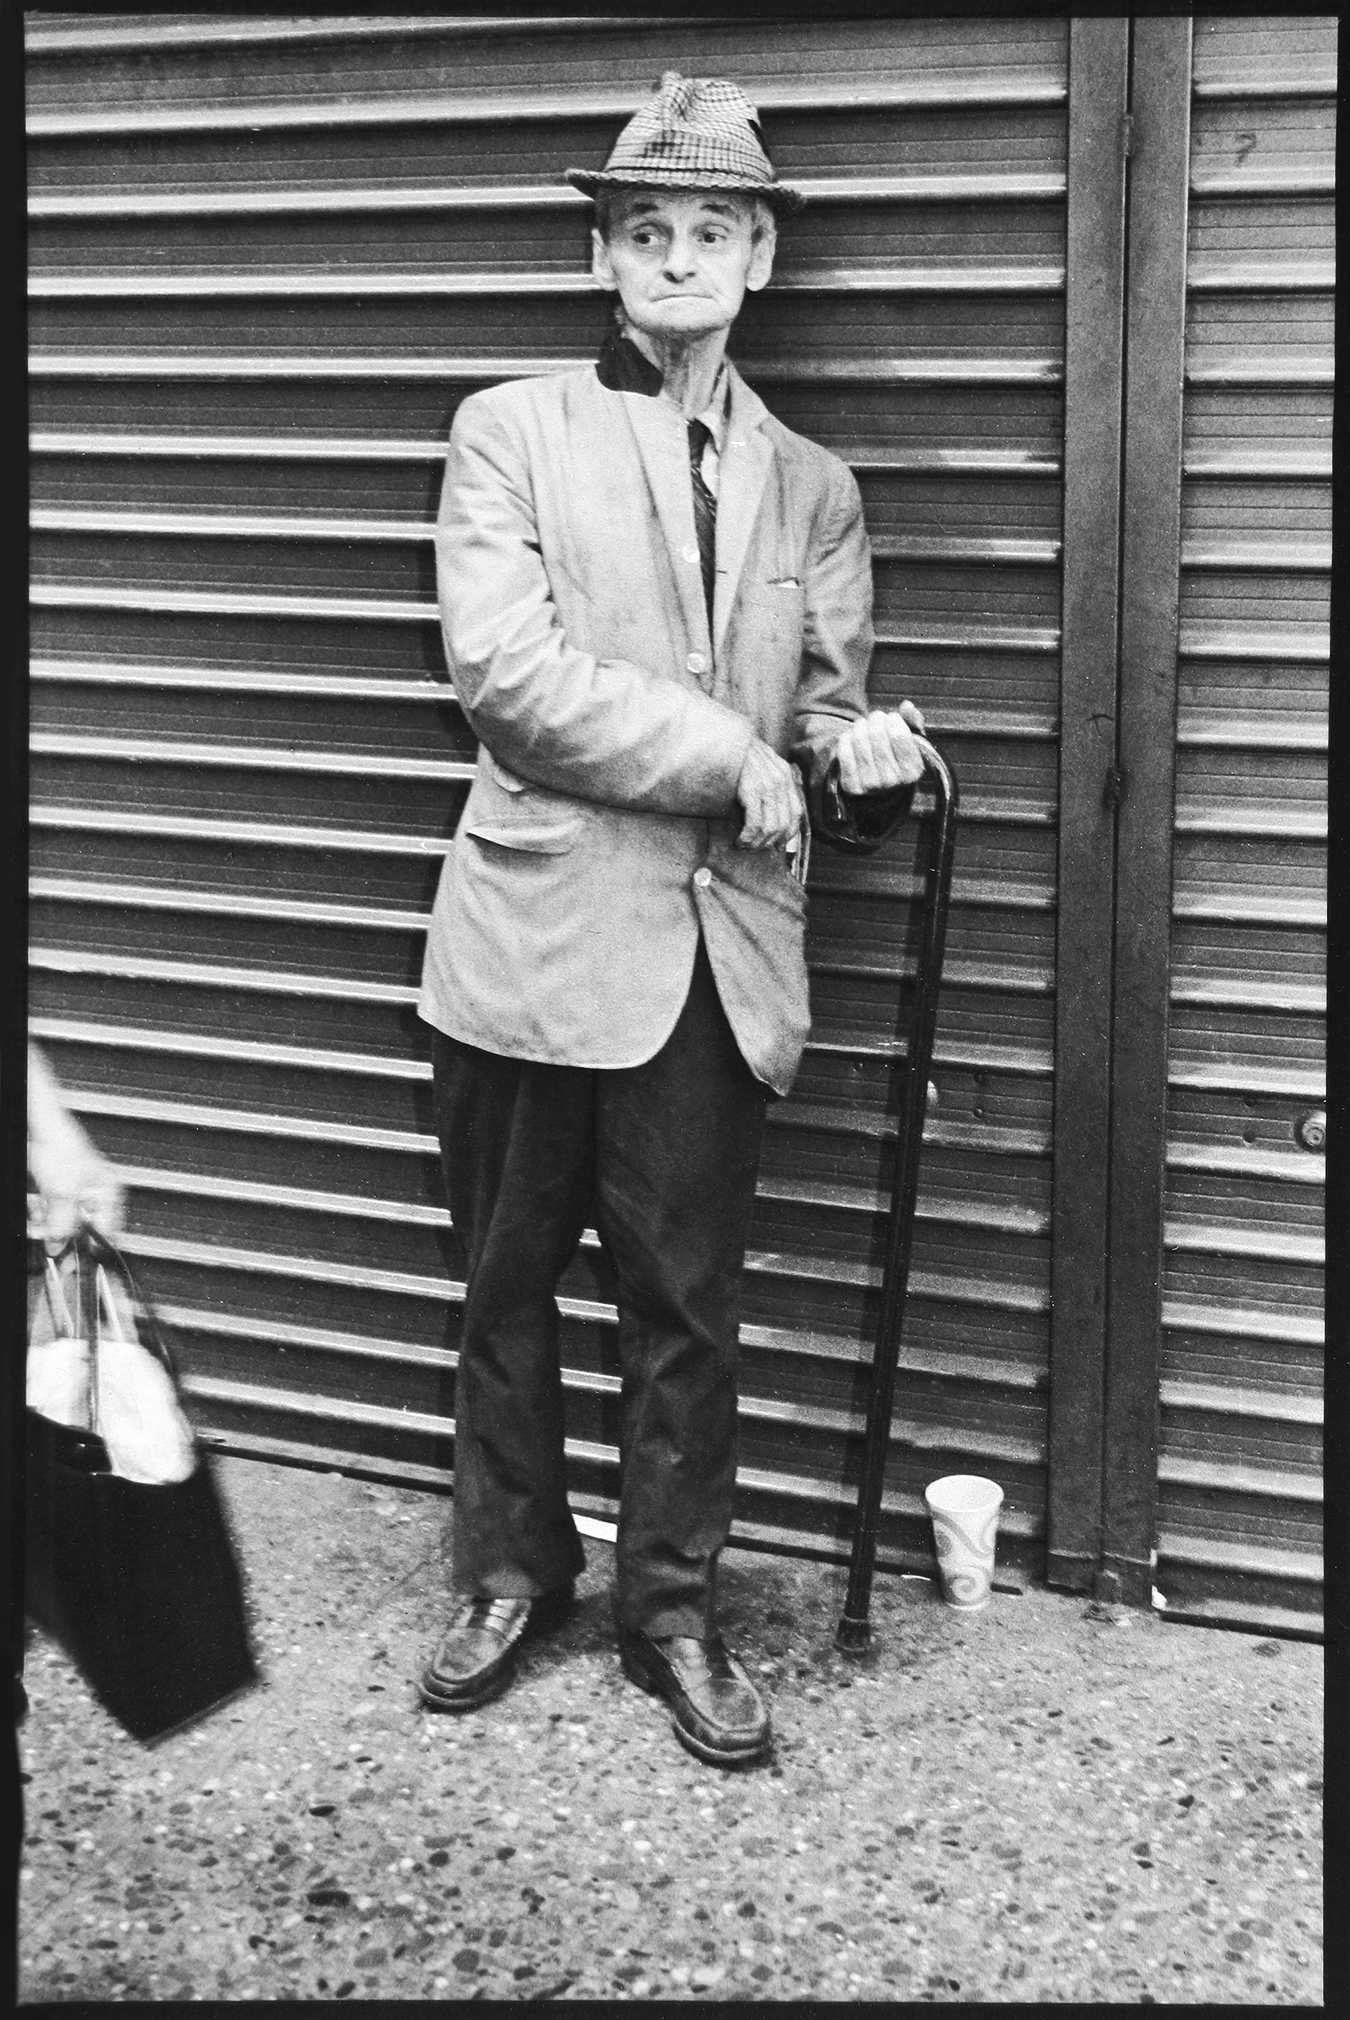 Tony_Ward_Studio_early_work_homeless_man_with_can_cup_begger